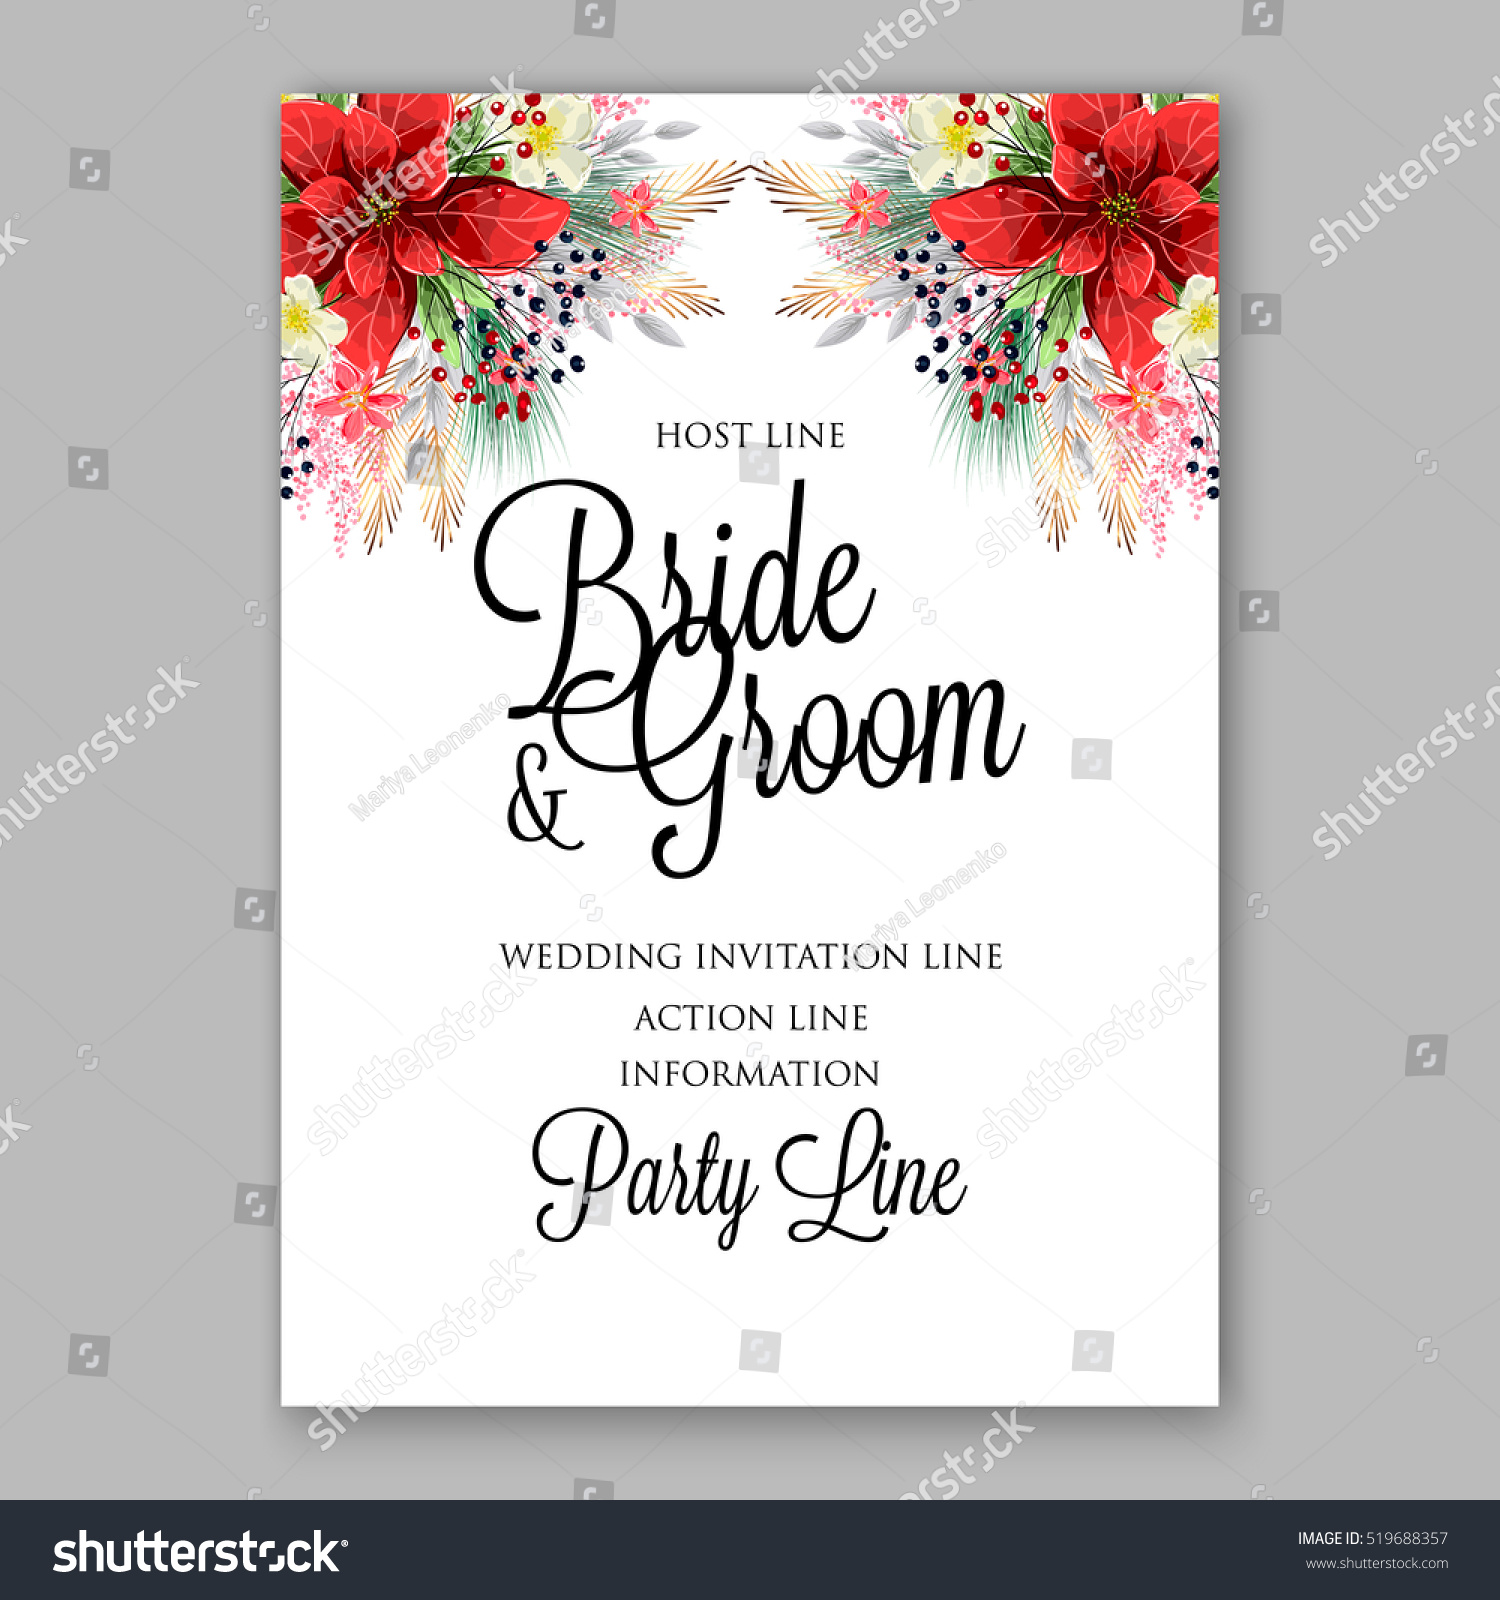 Poinsettia Wedding Invitation Sample Card Beautiful Stock Vector ...